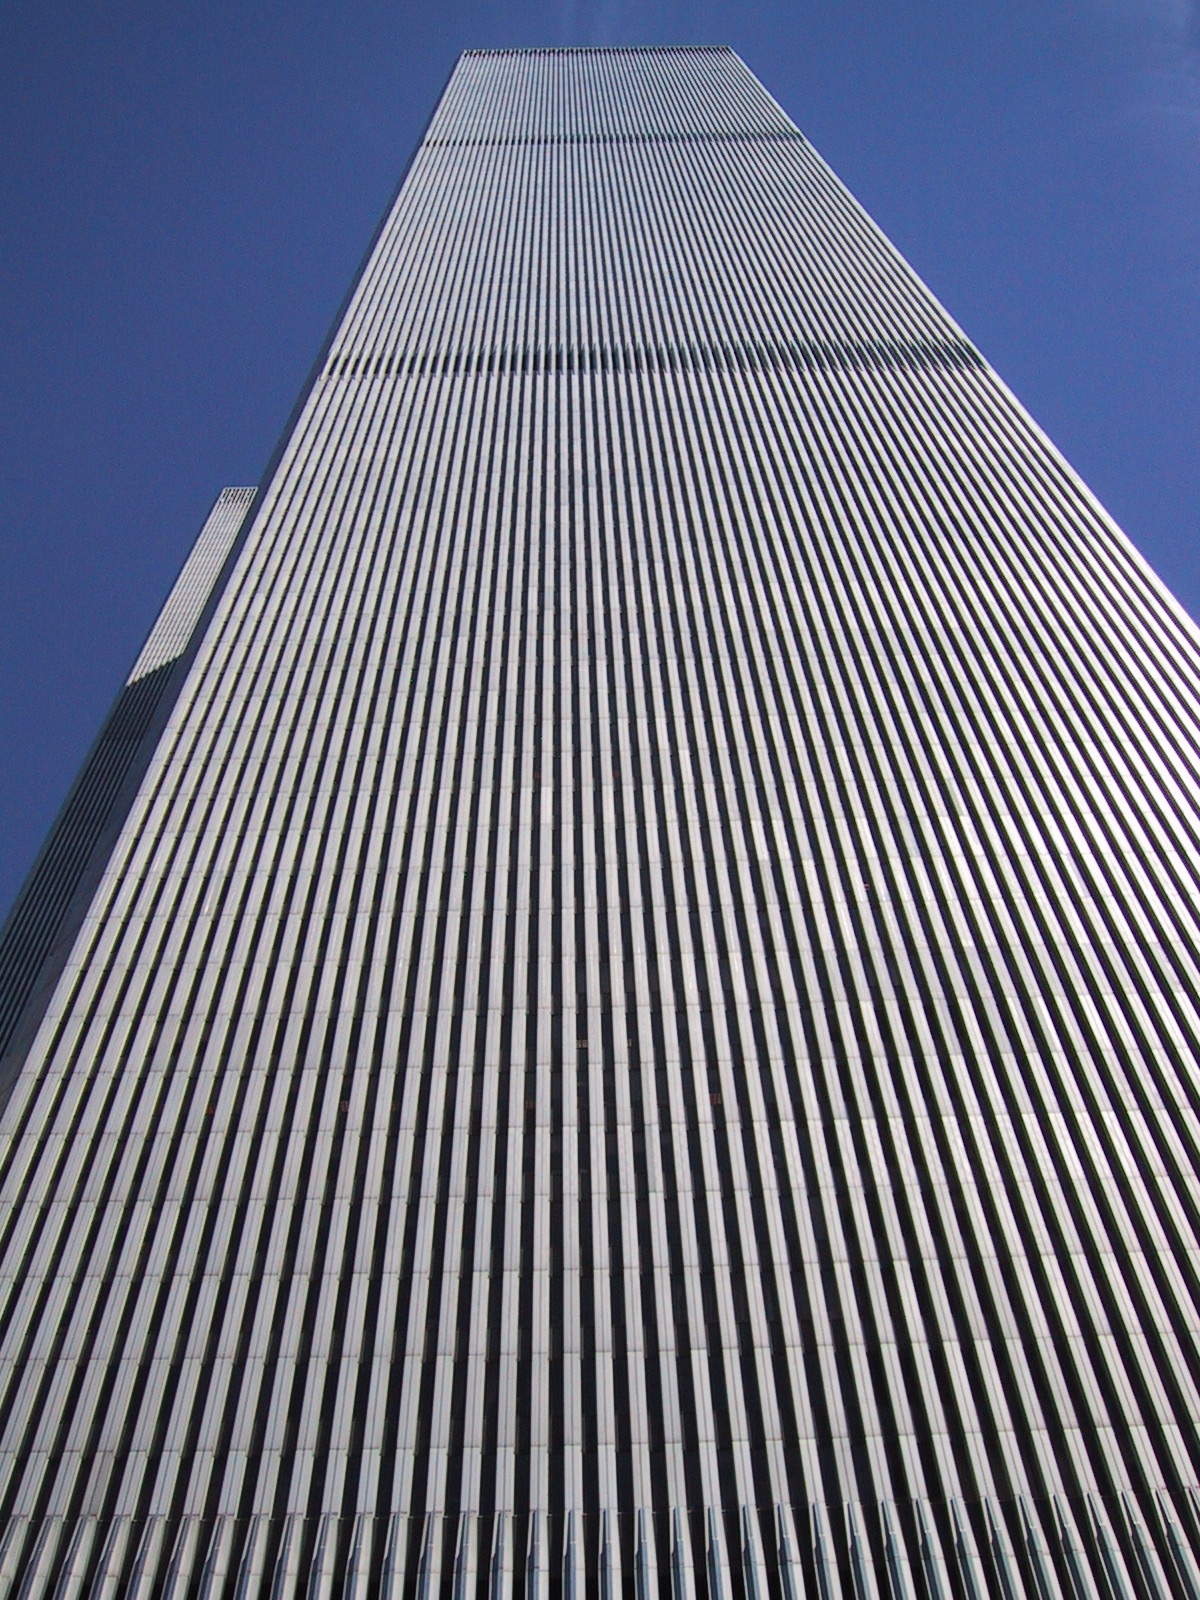 List of tenants in 2 world trade center wikipedia for 2 world trade center